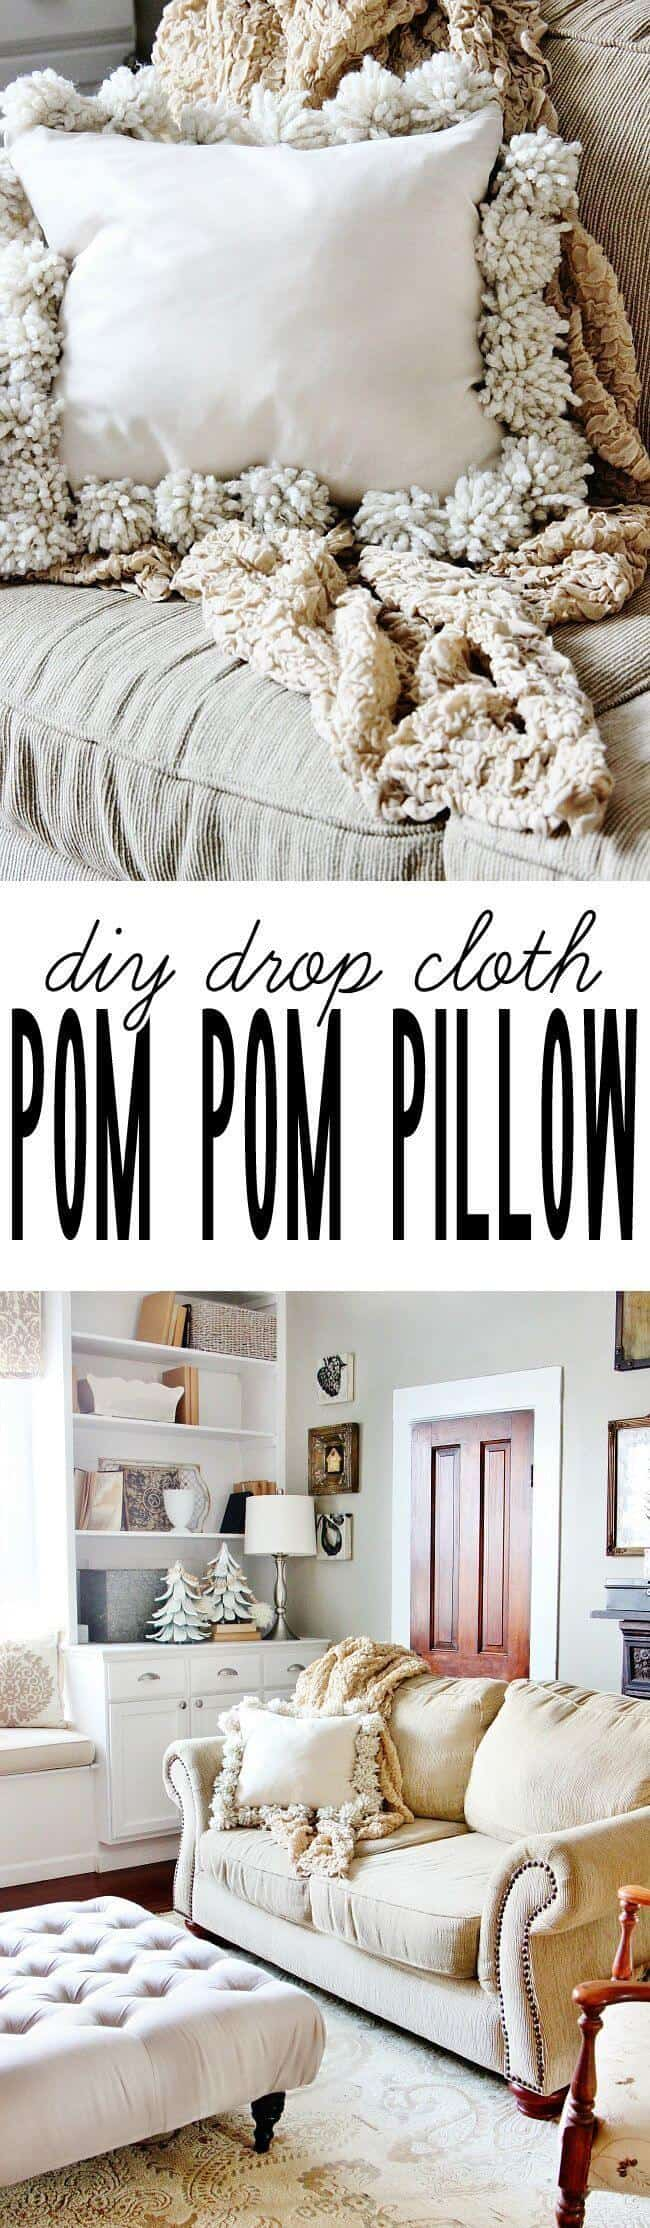 Shabby chic drop cloth pom pom pillow